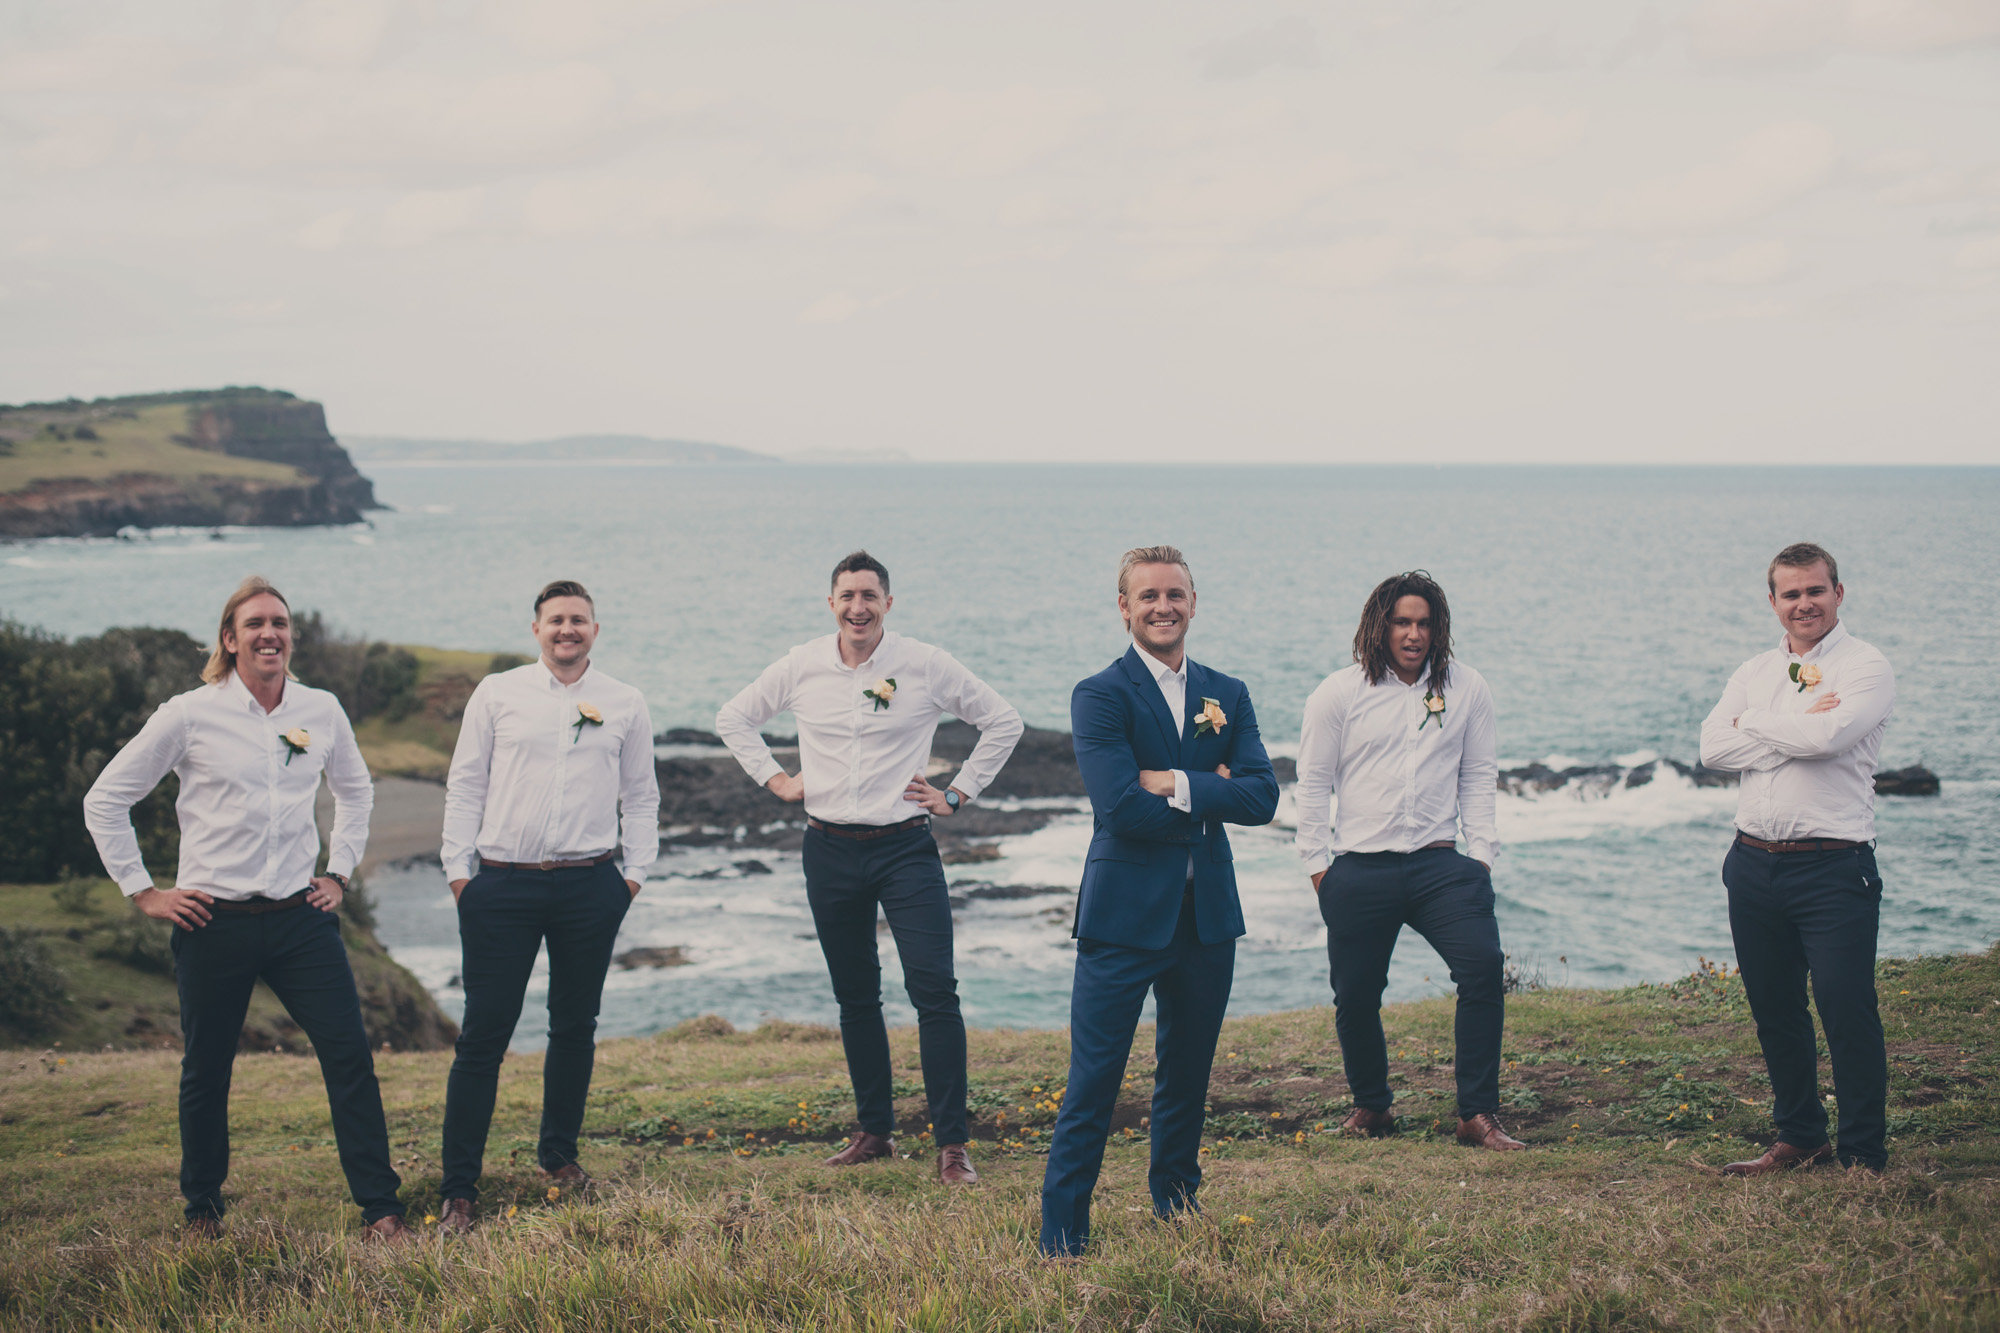 The Boys - Ballina wedding photography, skennards head, boulders beach